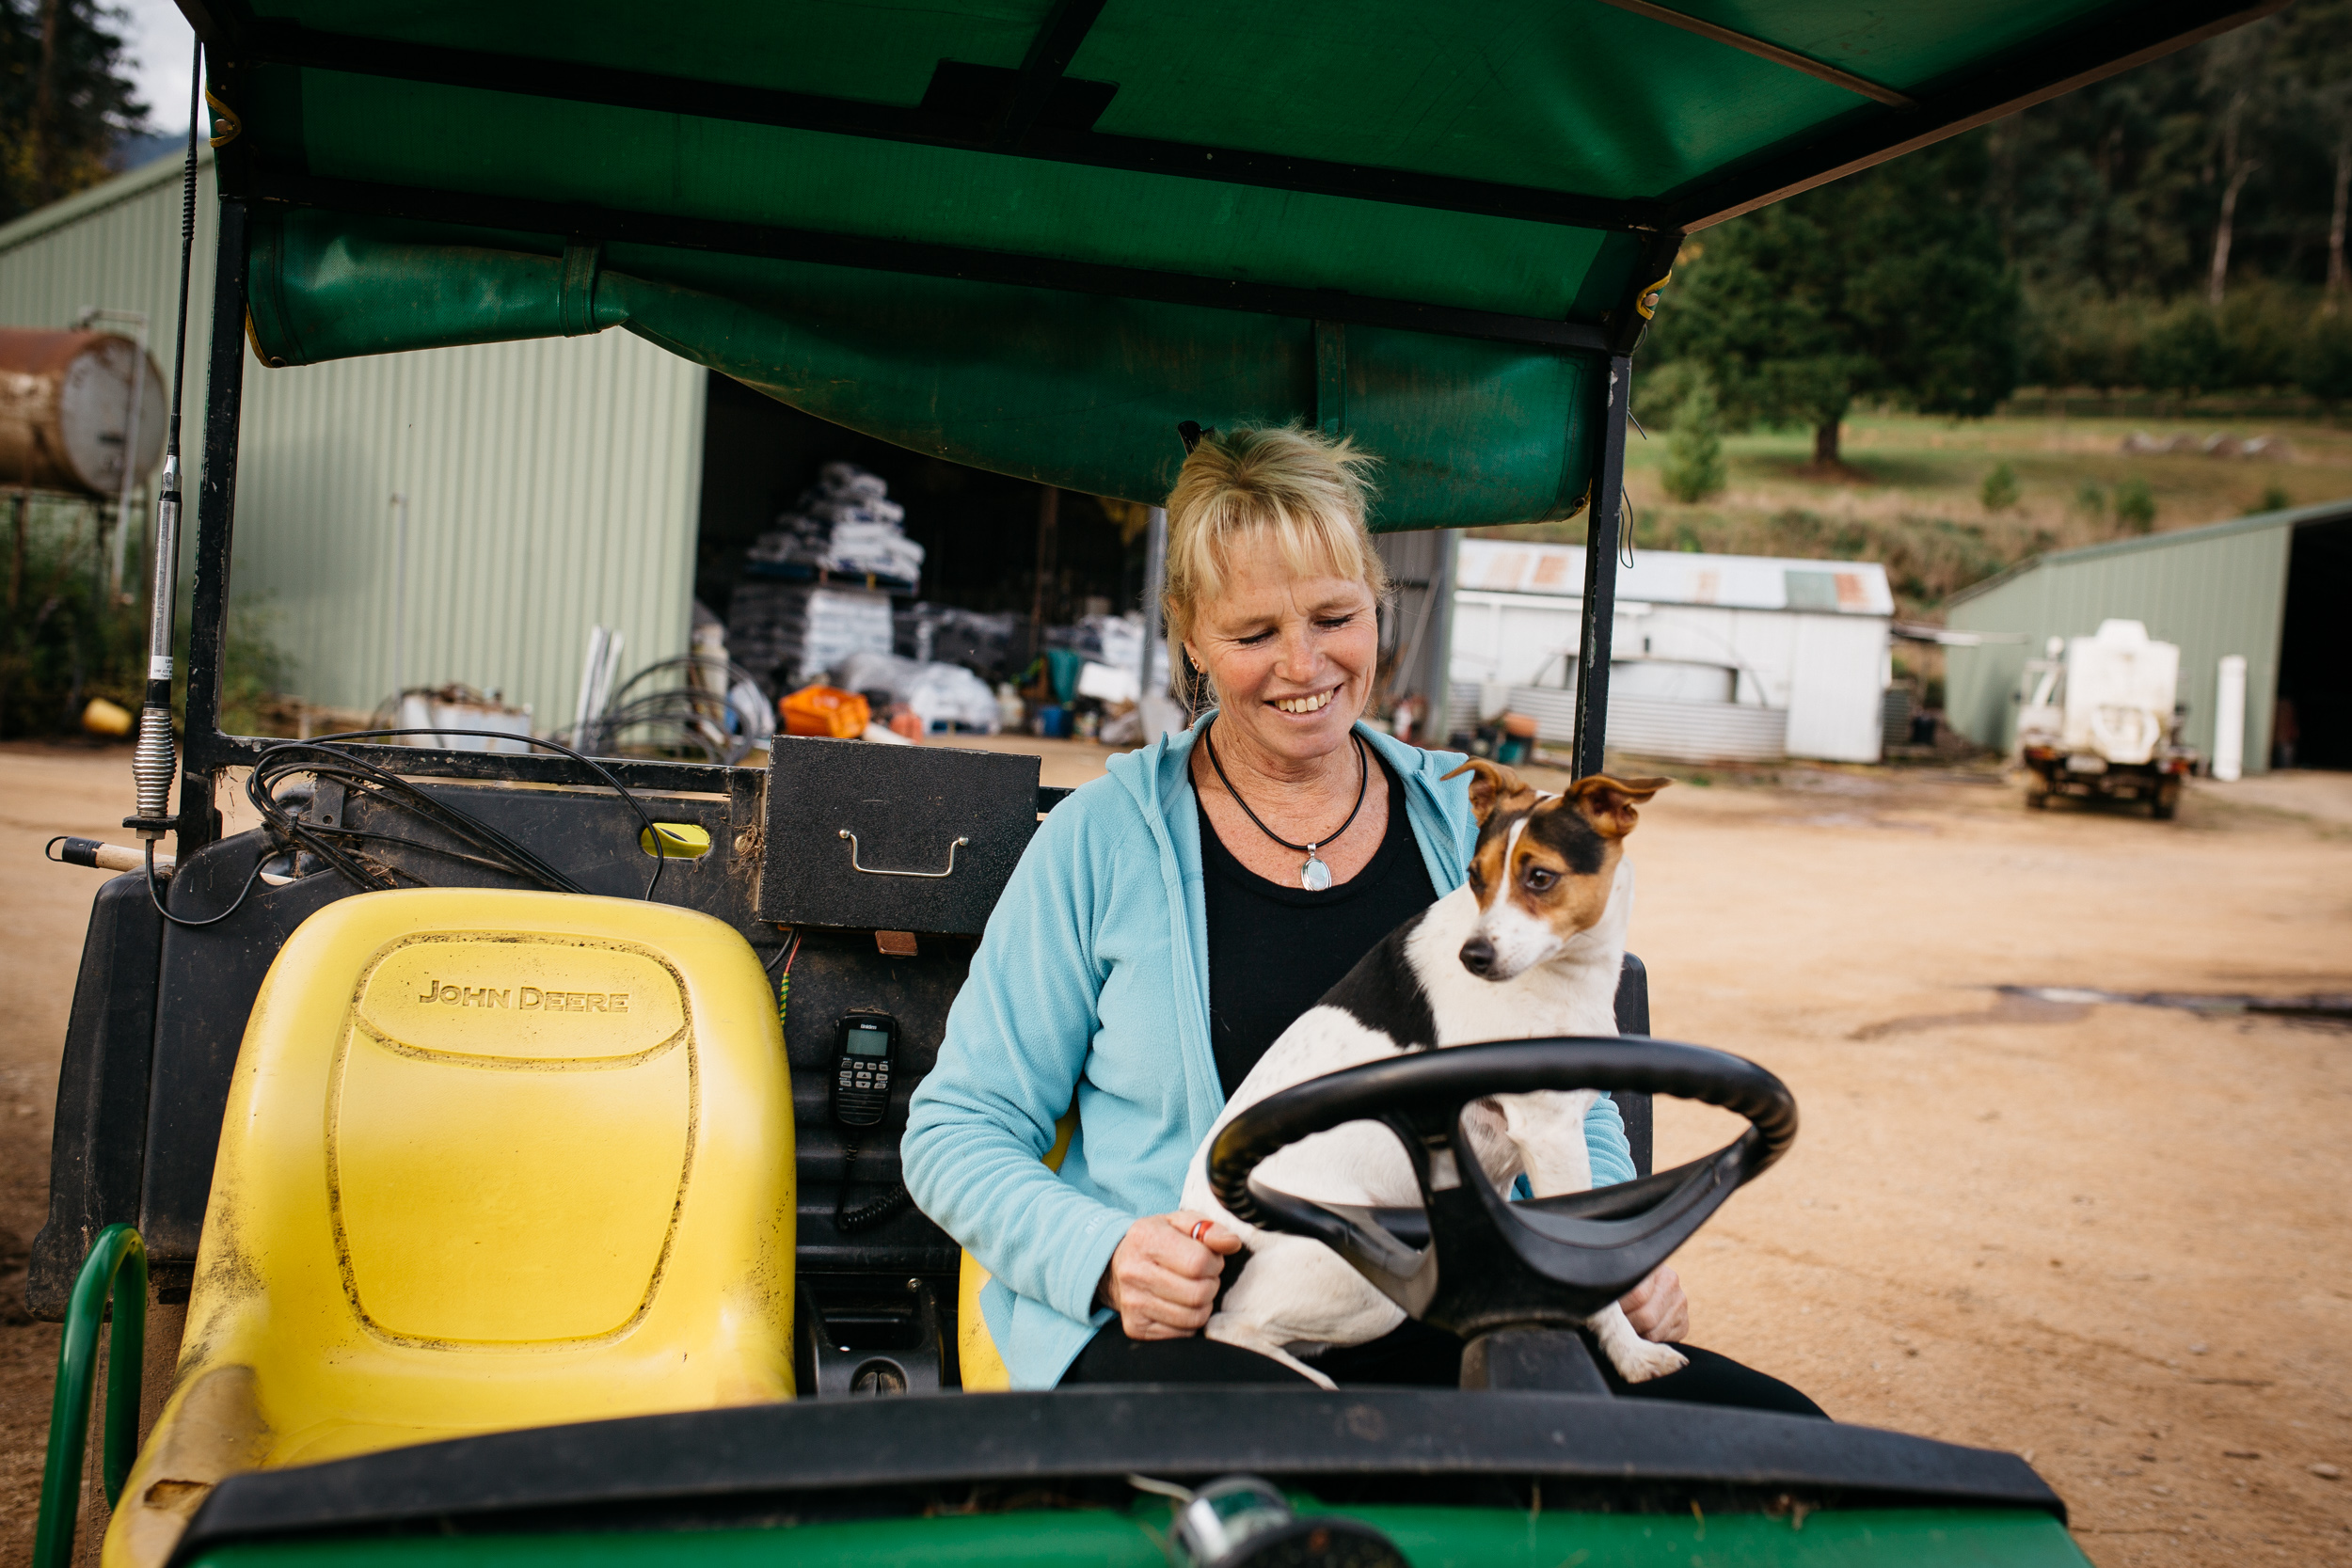 Sally Hall with her dog on a John Deere utility vehicle, Mountain Fresh Trout and Salmon Farm, Harrietville (Victoria), 2017, Photographer: Catherine Forge, Source: Museums Victoria [MM 145577:  https://collections.museumvictoria.com.au/items/2241617 ].